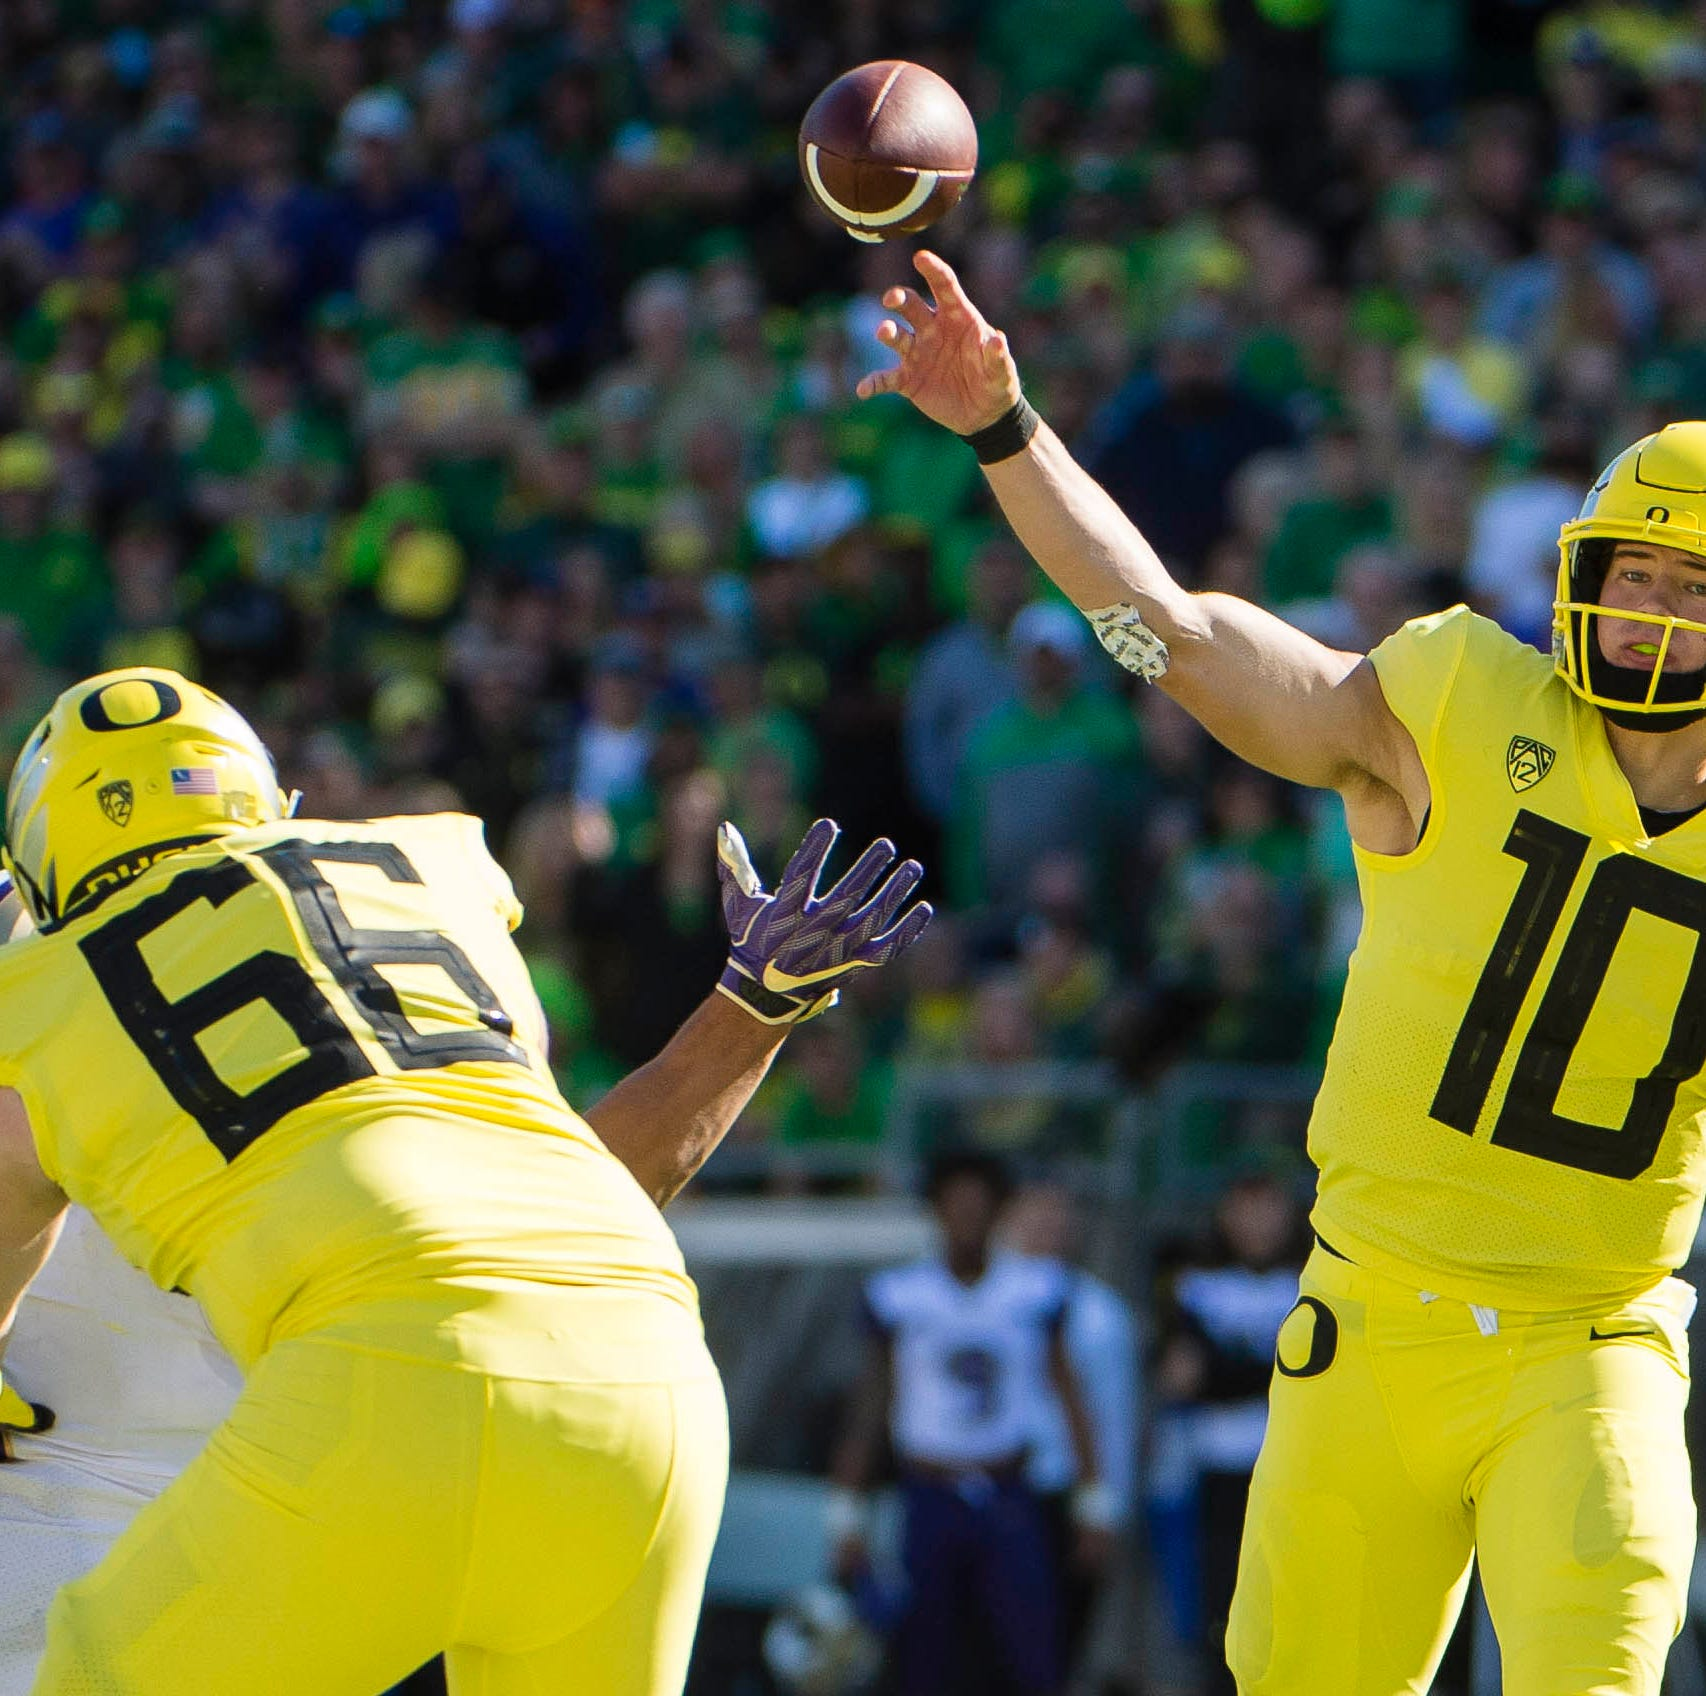 Oregon Ducks upset Washington Huskies in overtime